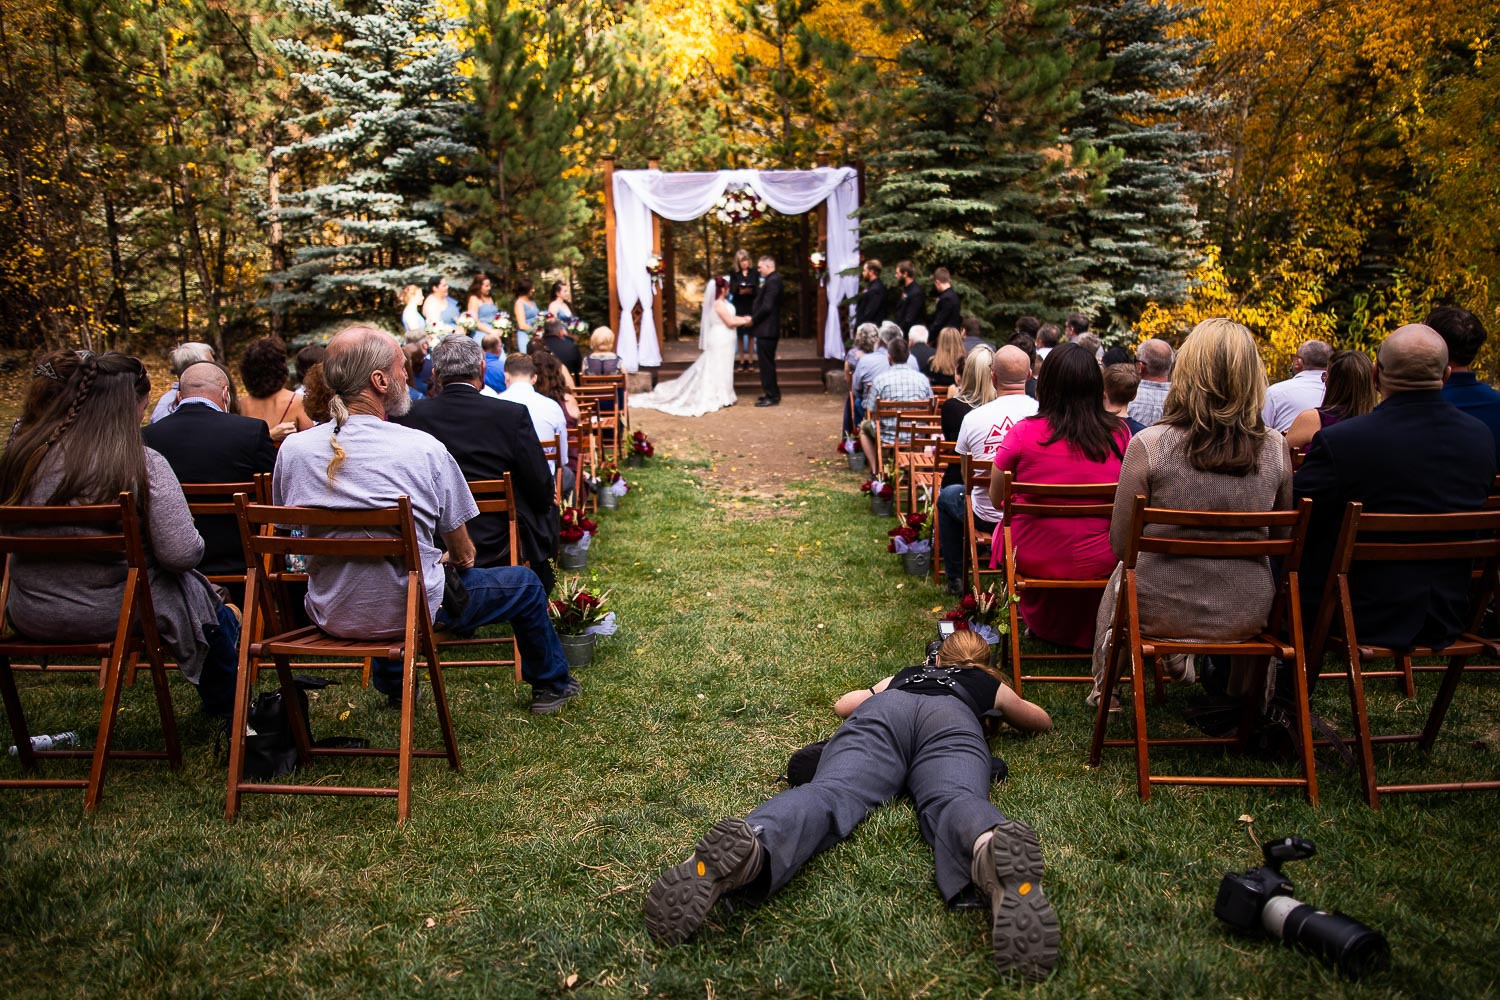 The Colorado photographer lays sprawled out on the grass during the outdoor wedding ceremony.